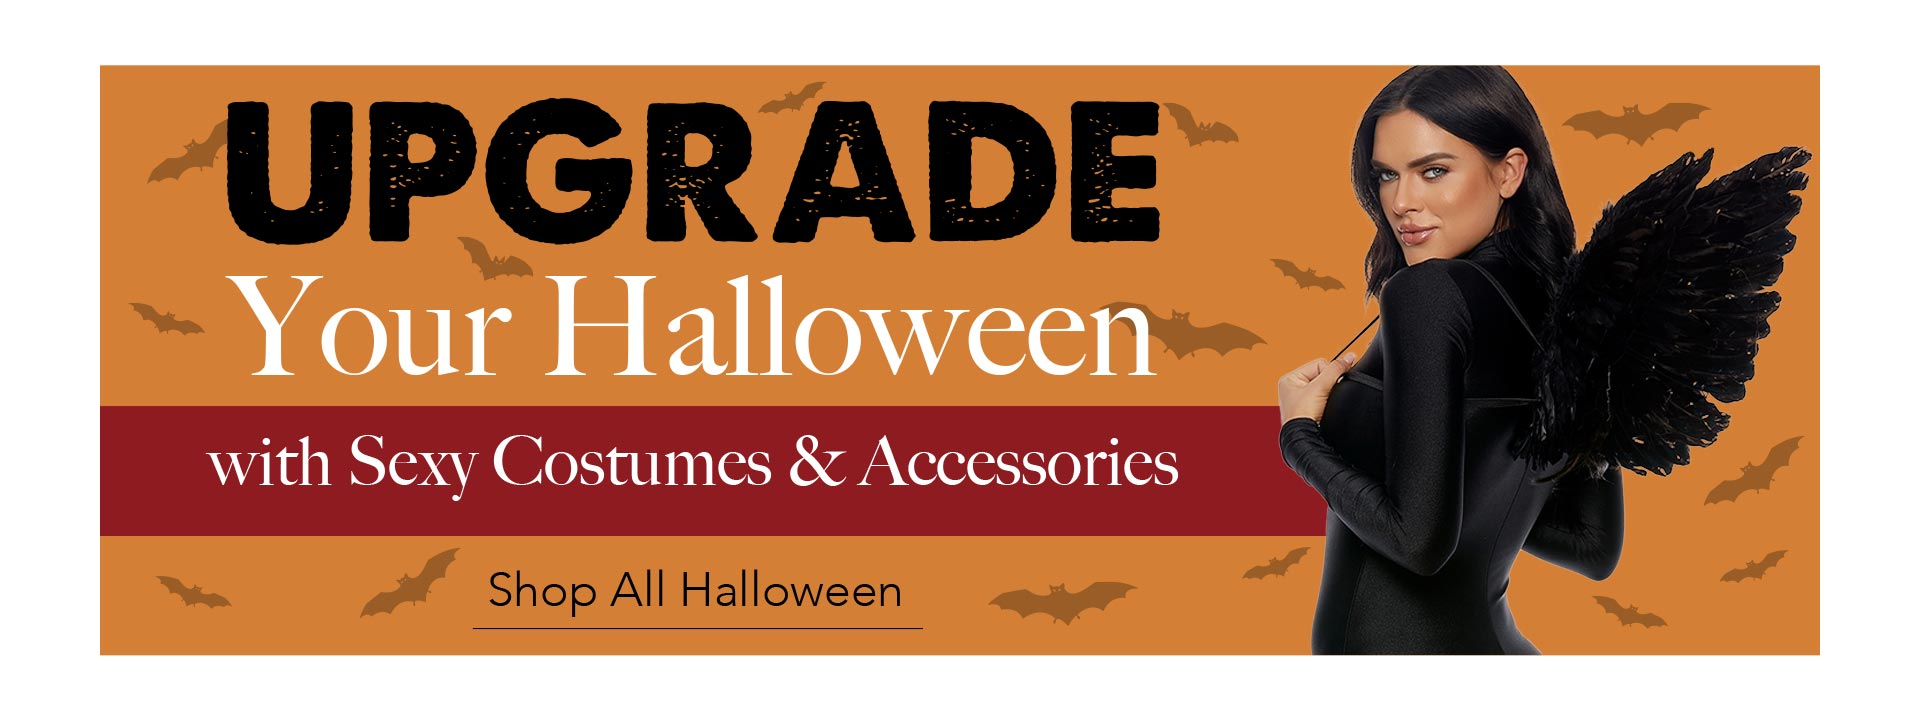 UPGRADE Your Halloween with Sexy Costumes & Accessories! - Shop All Halloween